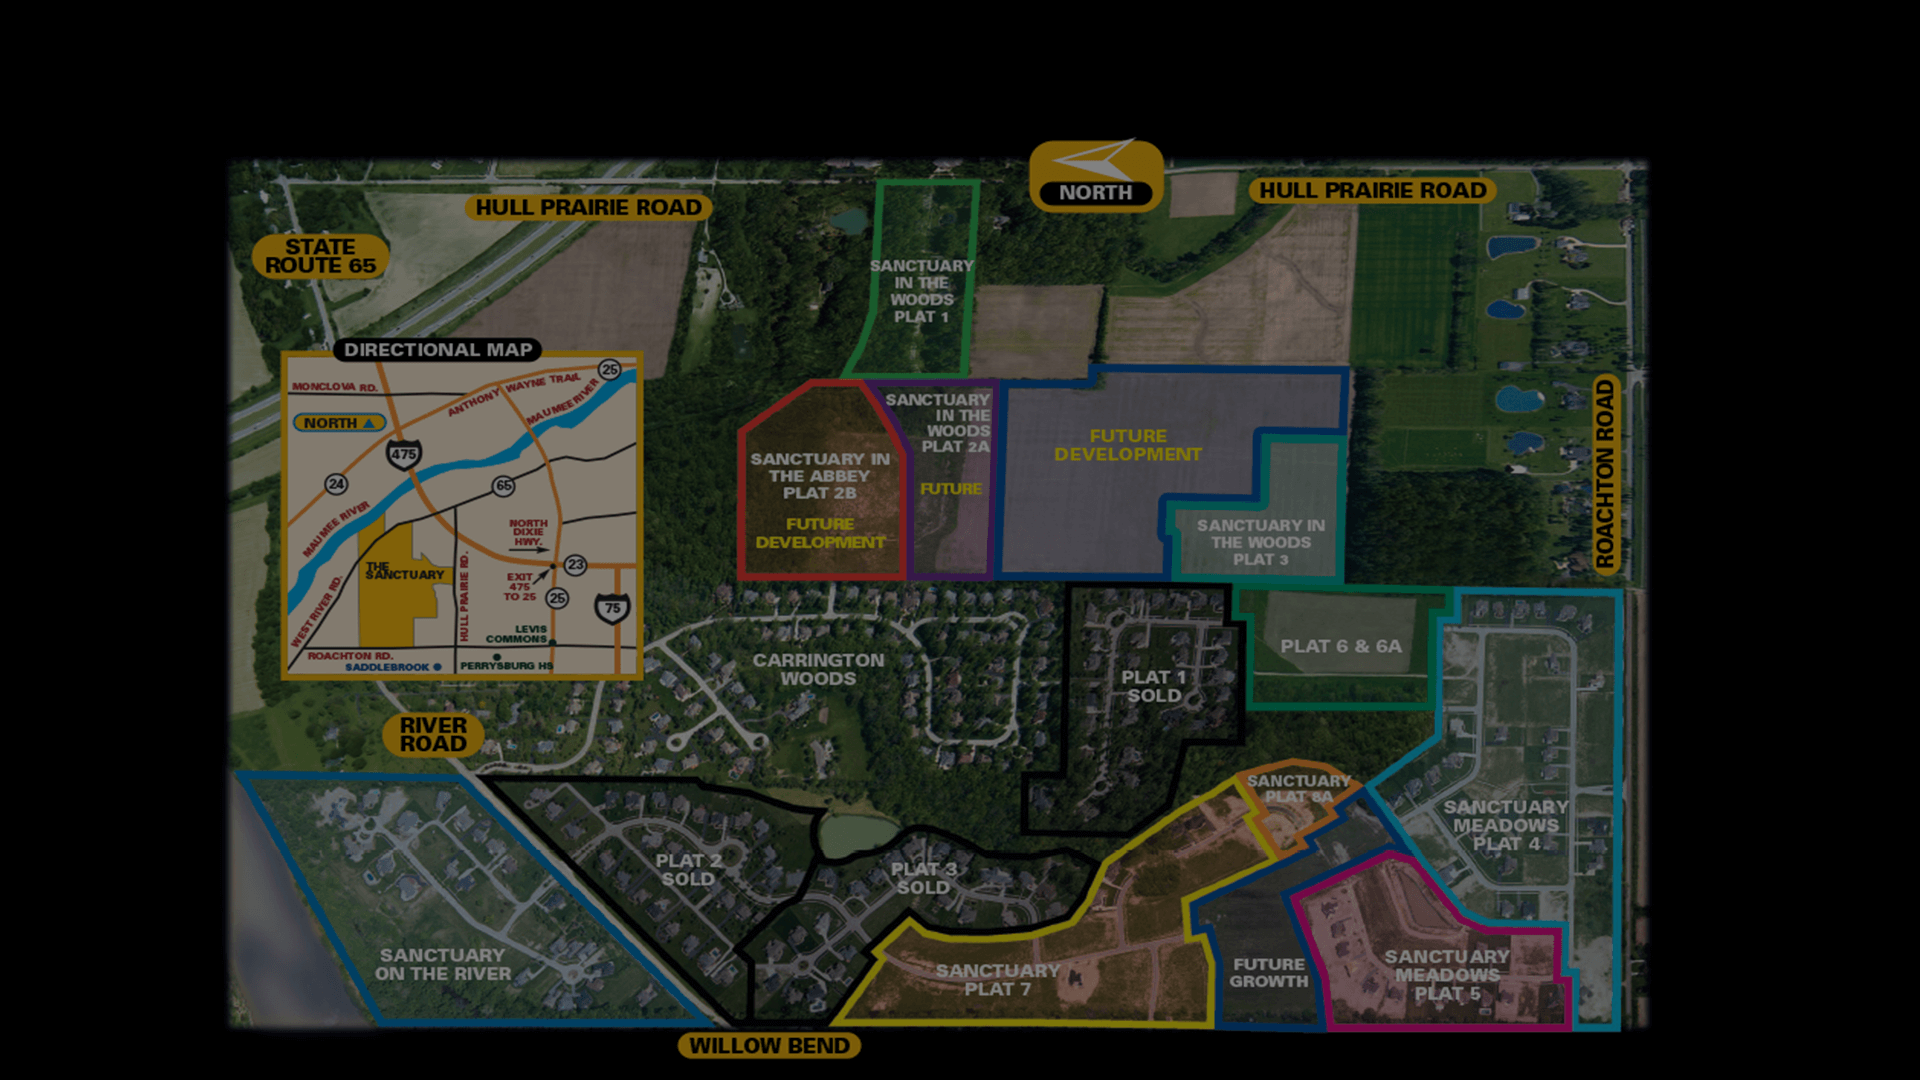 New Home Community Map of the Sanctuary in Perrysburg Ohio. Land for building new homes in Perrysburg, Ohio.